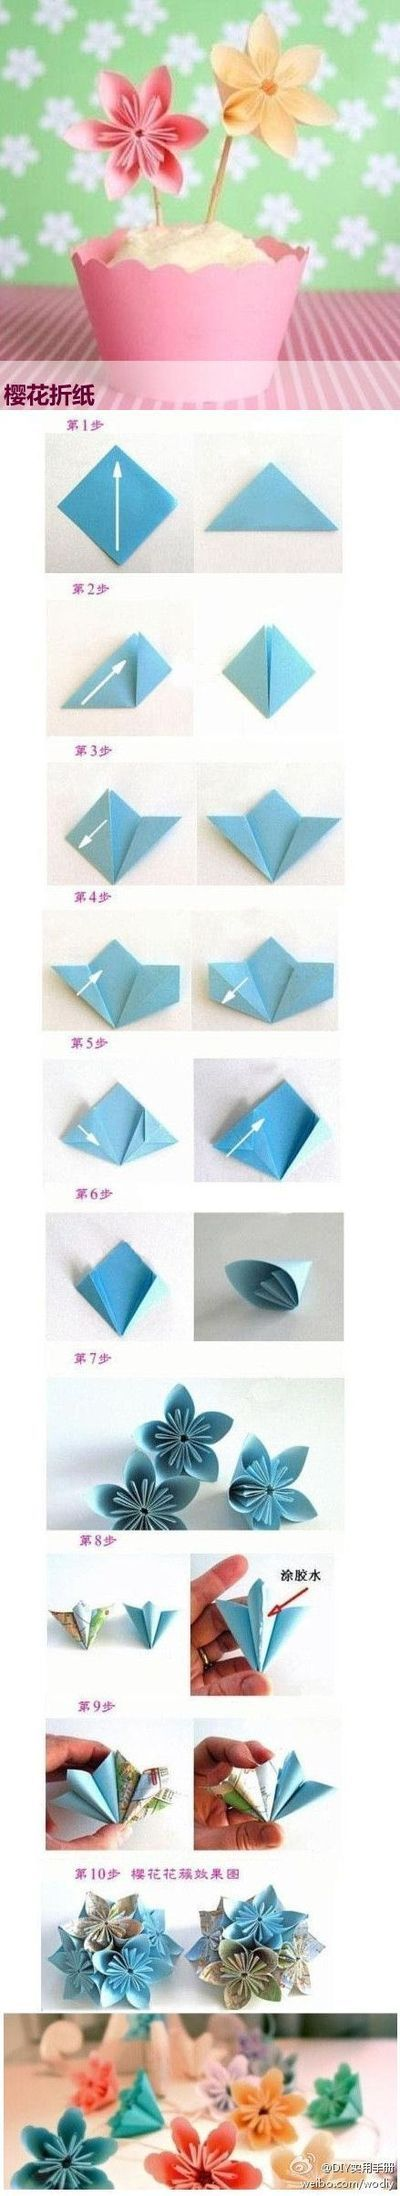 Flower Origami Paper Making Folding Japanese Diy